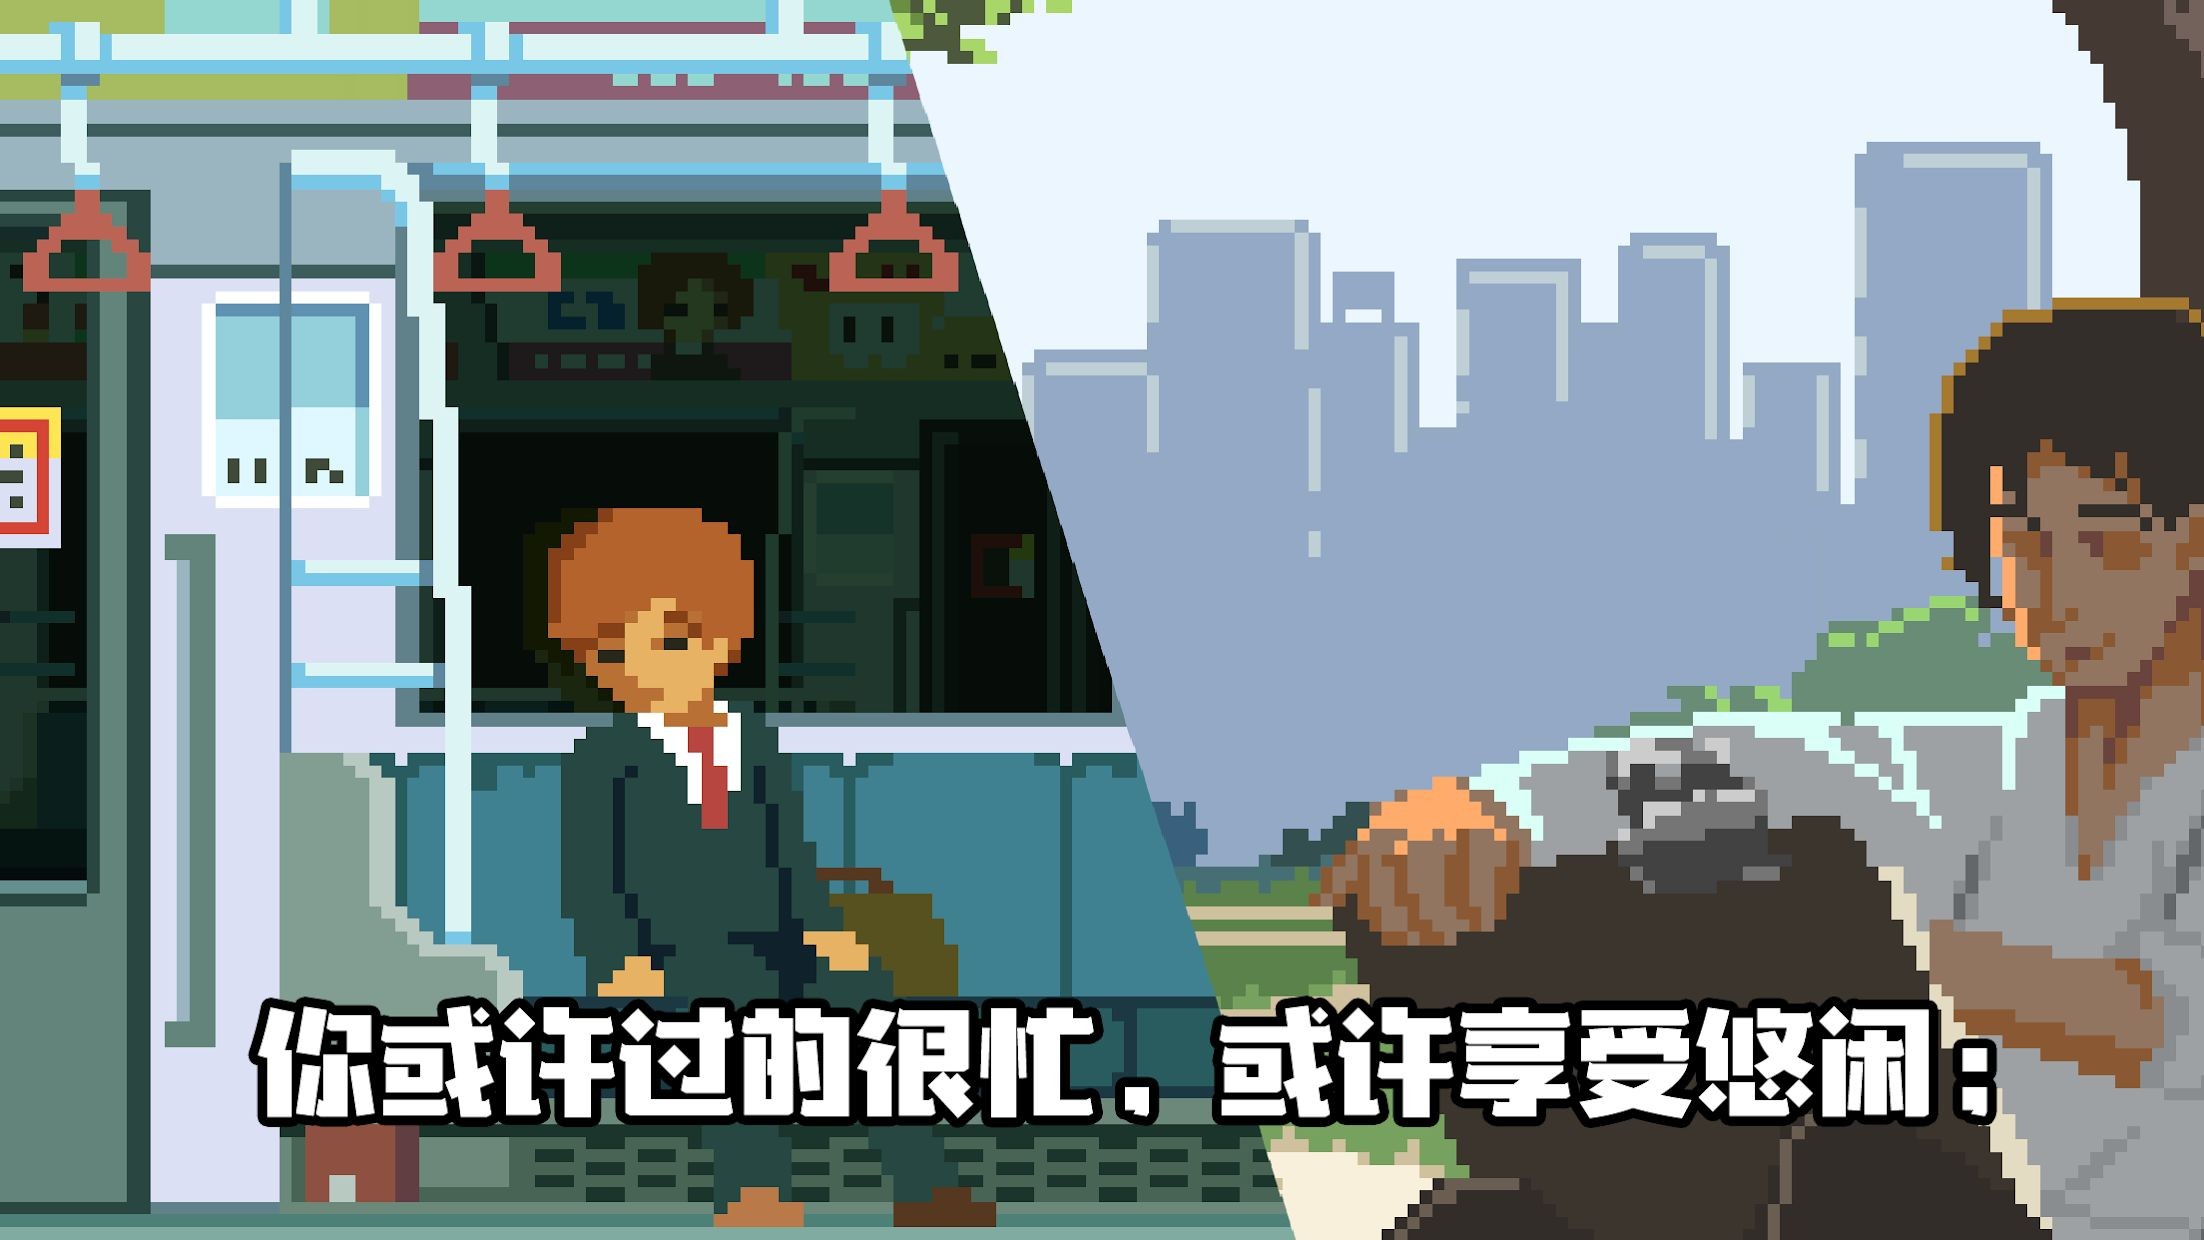 Life is a game : 人生游戏 游戏截图4